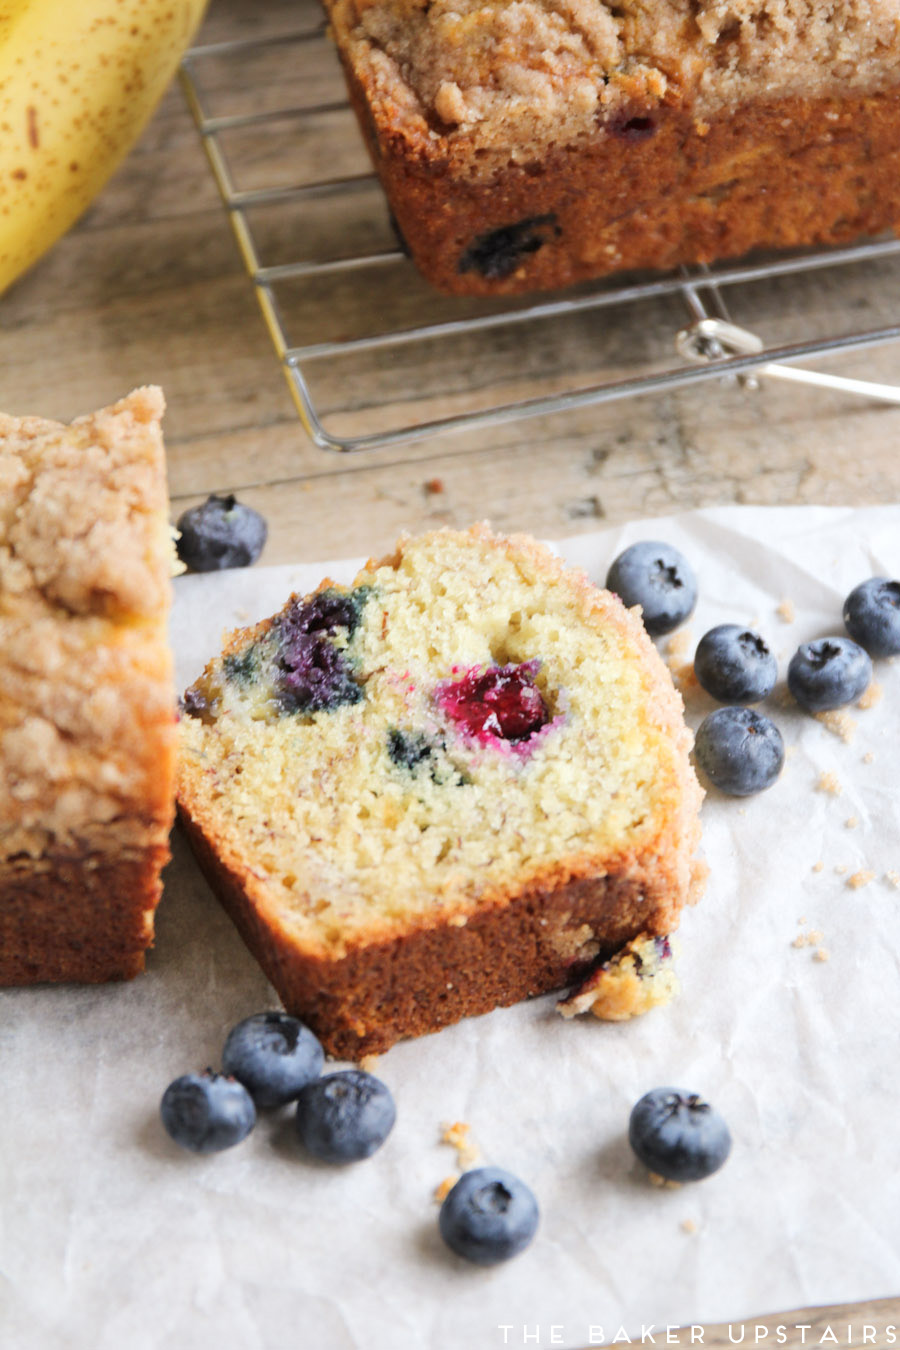 This blueberry banana bread is loaded with juicy blueberries and topped with a buttery cinnamon streusel. It is so good!